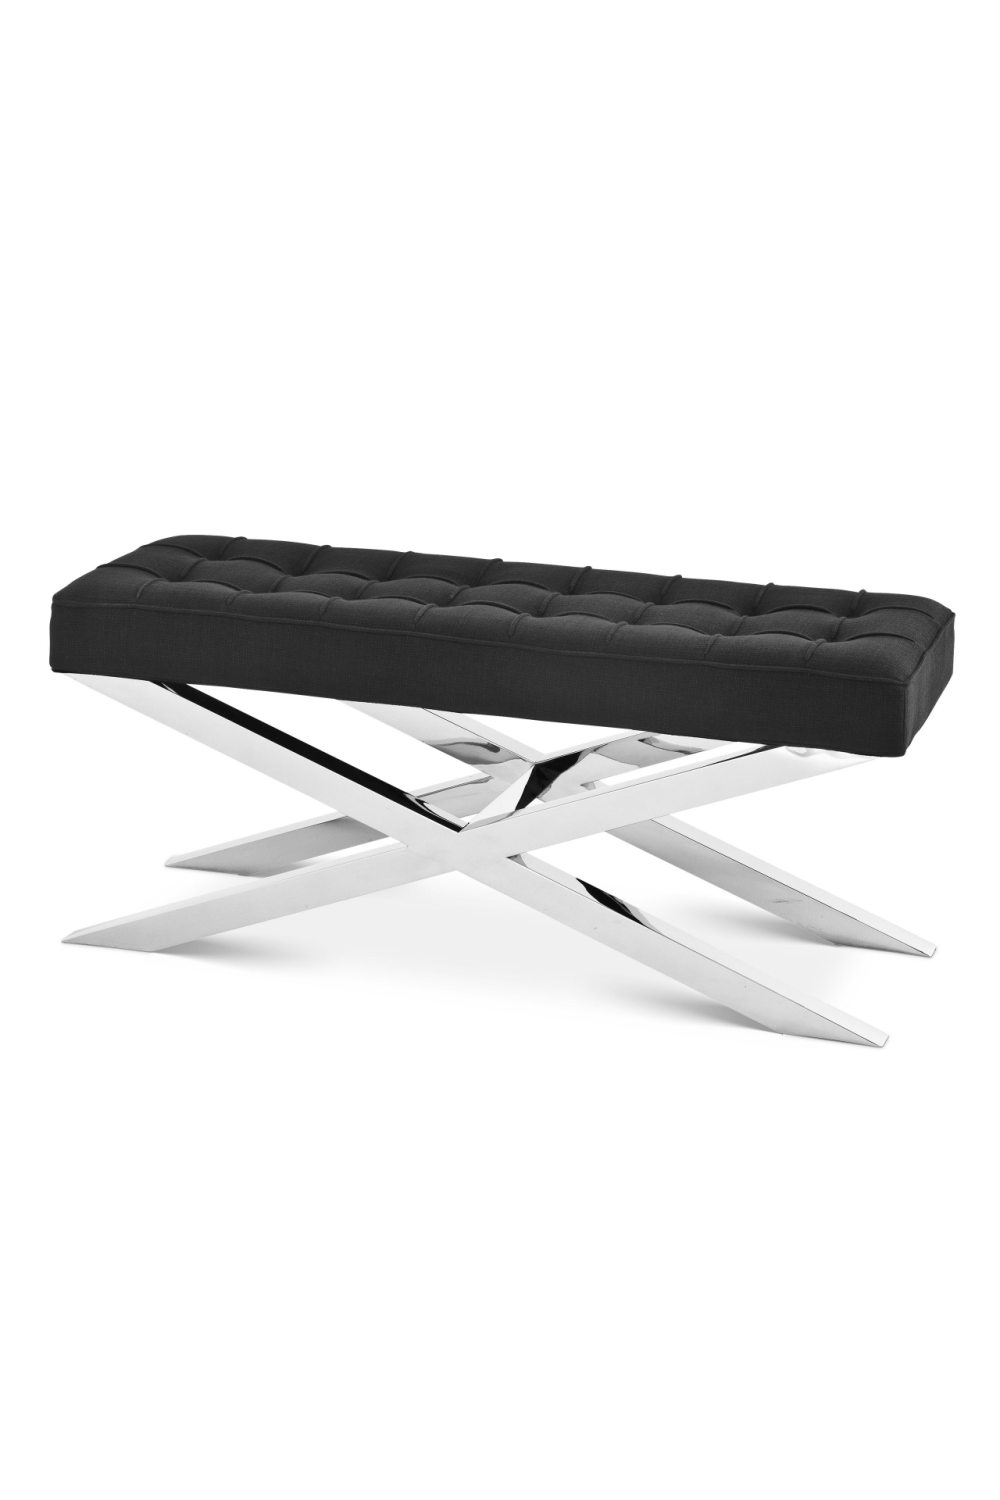 Black Tufted X-Leg Bench | Eichholtz Beekman